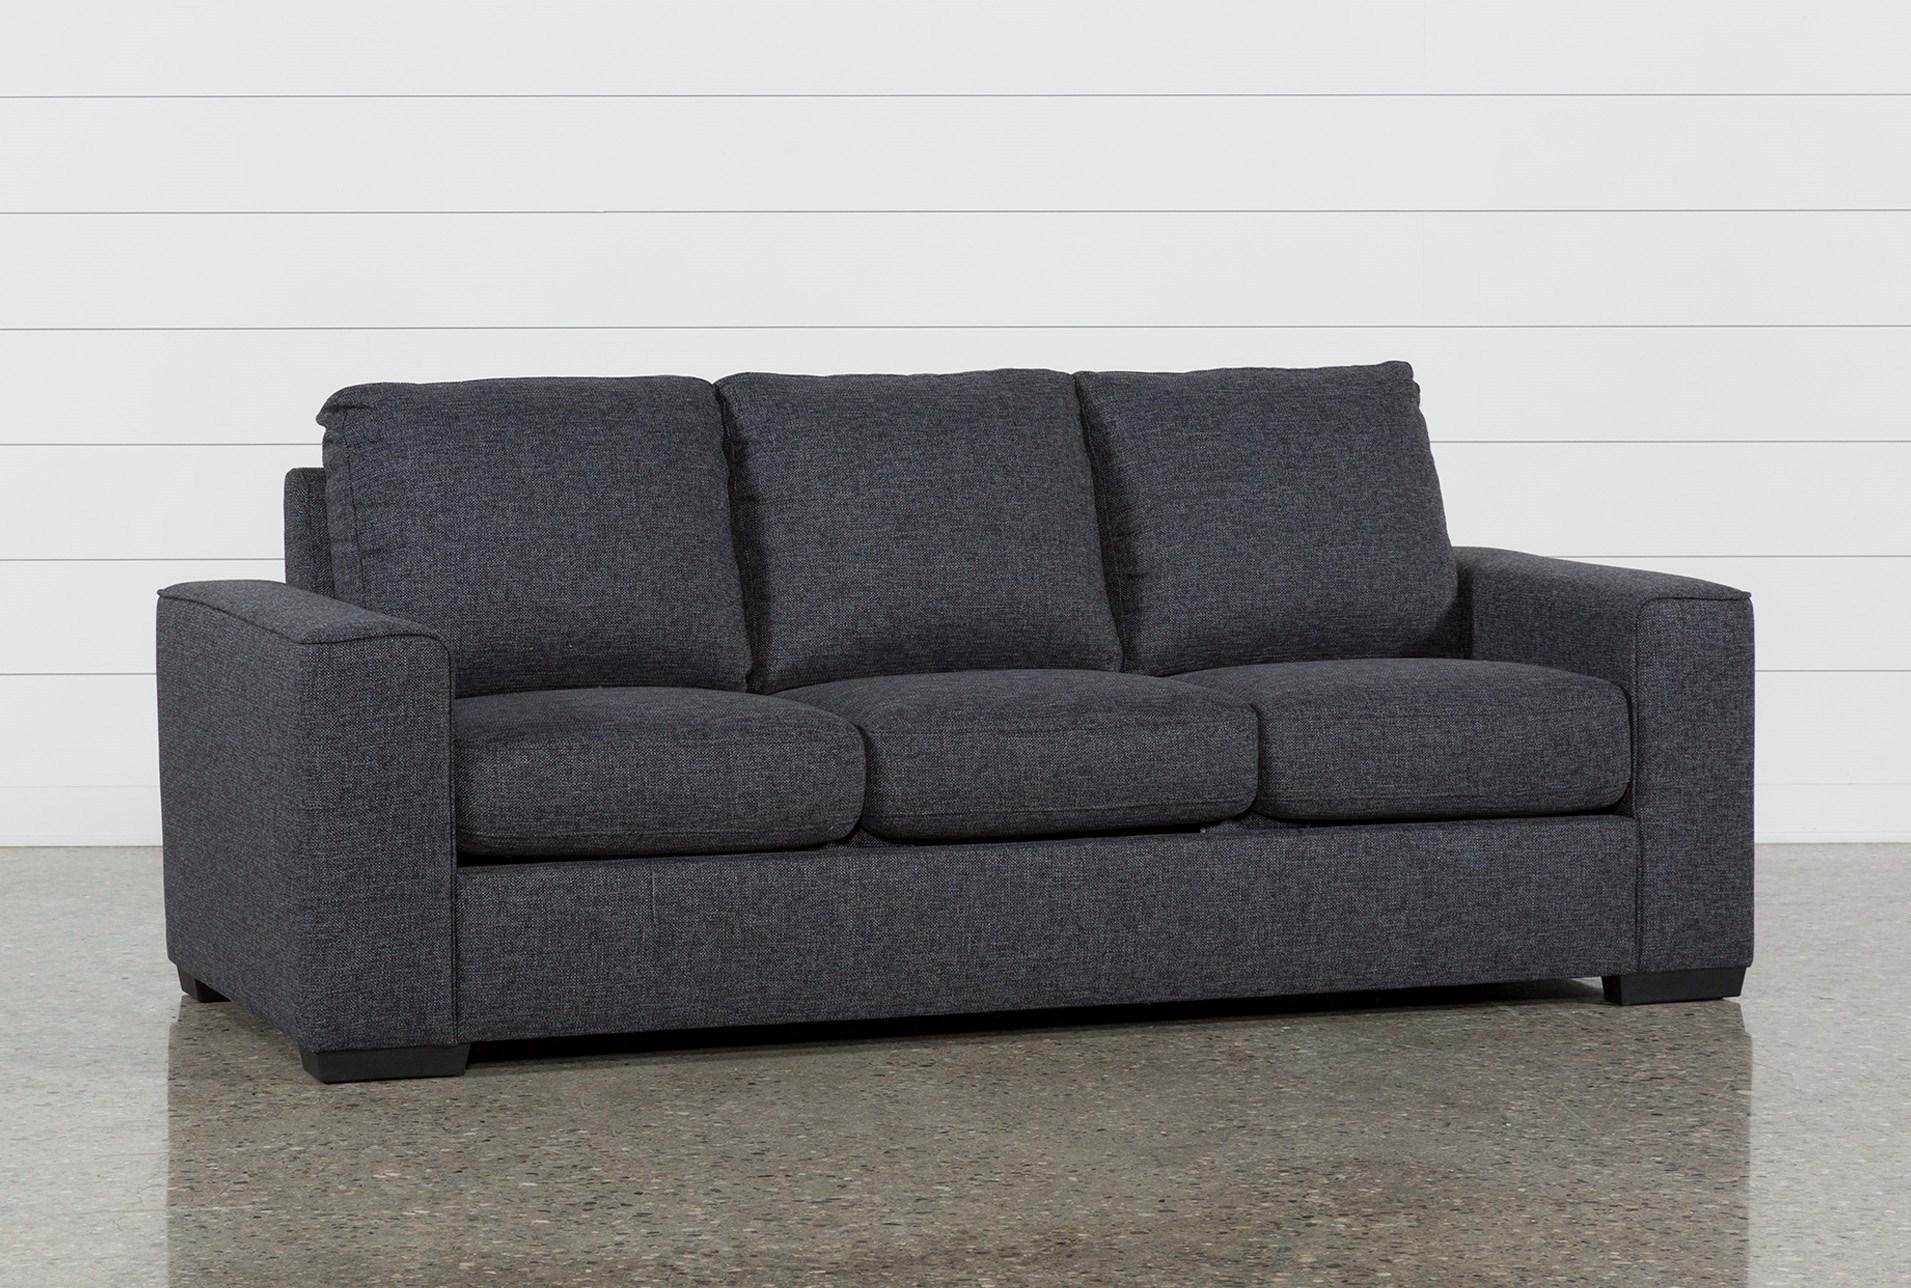 Lucy Dark Grey Sofa | Home Decor | Pinterest | Living Spaces, Living inside Lucy Dark Grey 2 Piece Sleeper Sectionals With Raf Chaise (Image 17 of 30)